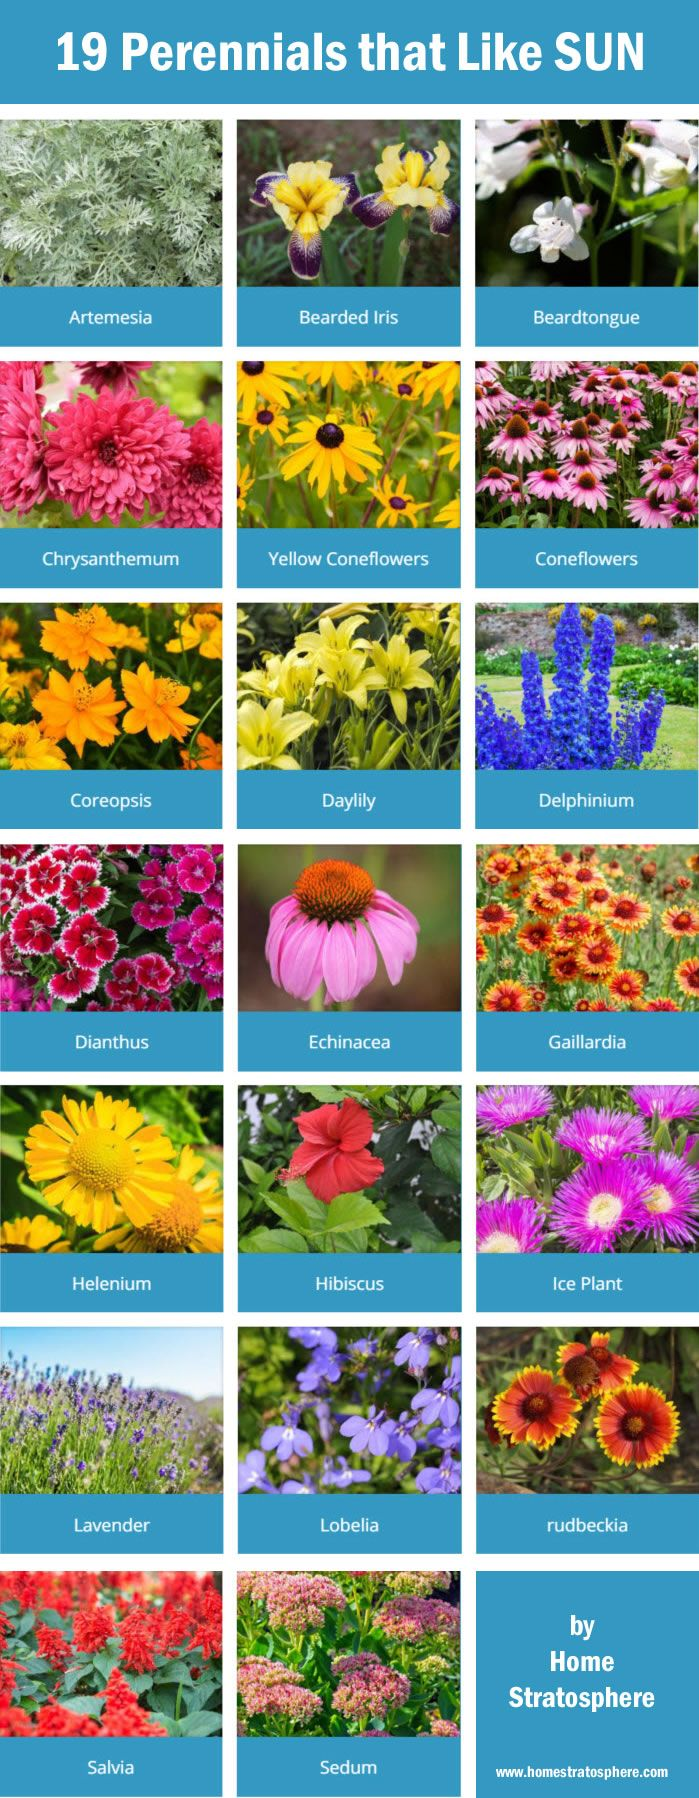 19 perennials that like the sun gardening prof